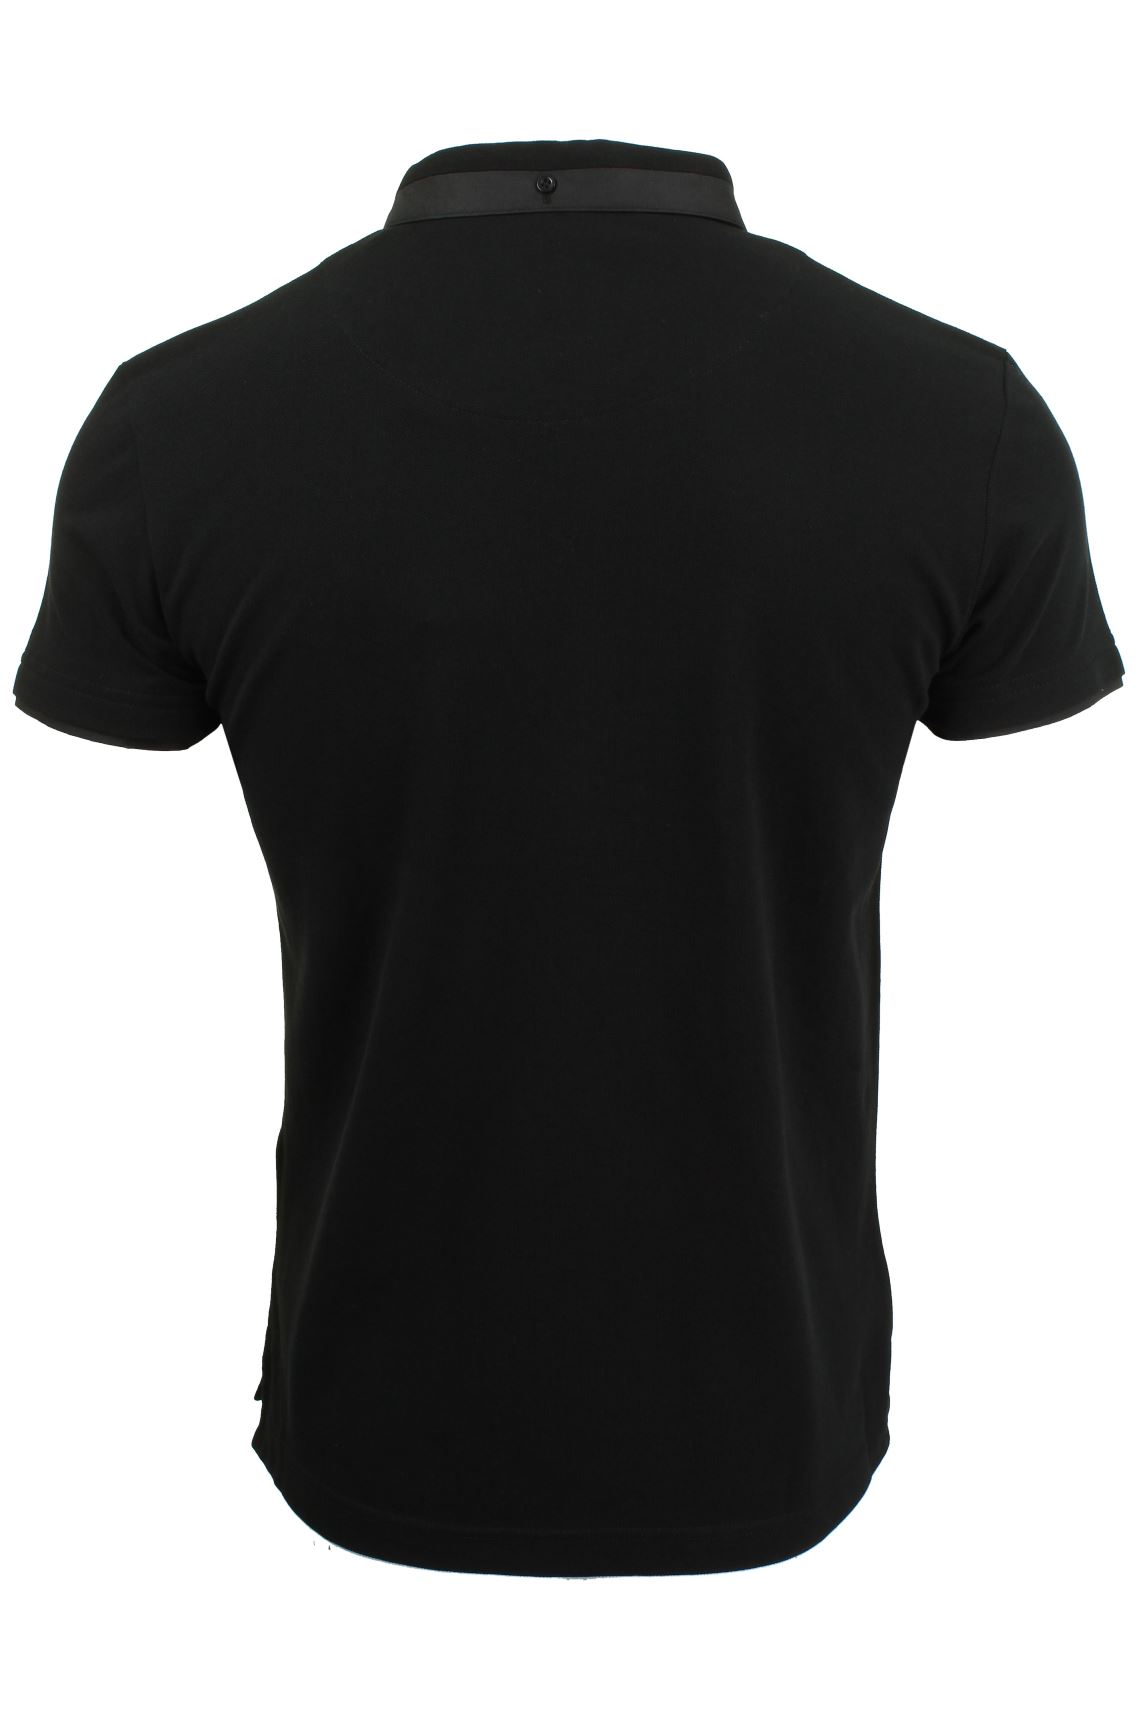 Mens-Short-Sleeved-Polo-Shirt-from-the-Blackout-Collection-by-Voi-Jeans thumbnail 19